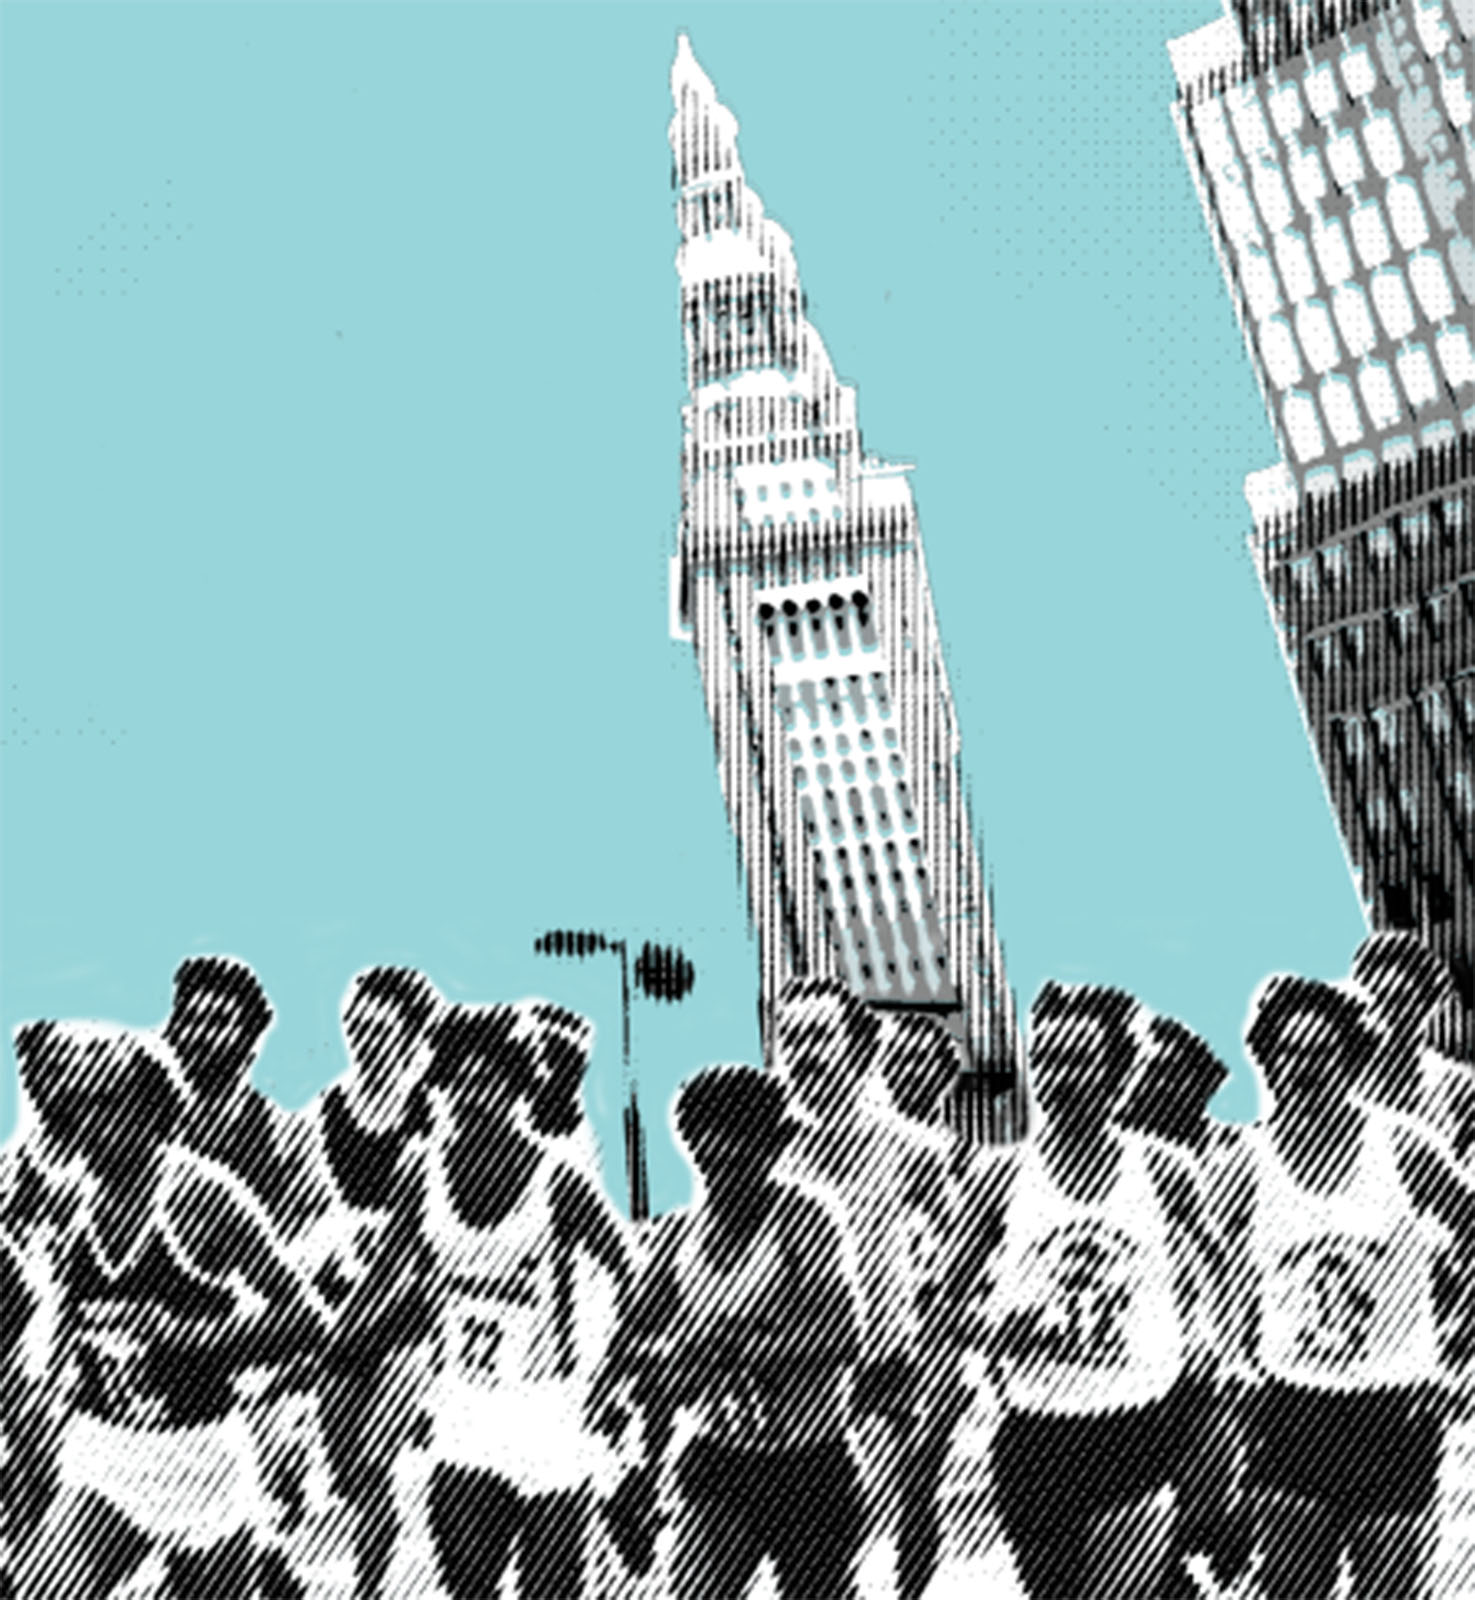 - As 2017 marked the Marathon's 40th anniversary, the goal with this poster was to throw it back to the late '70s.